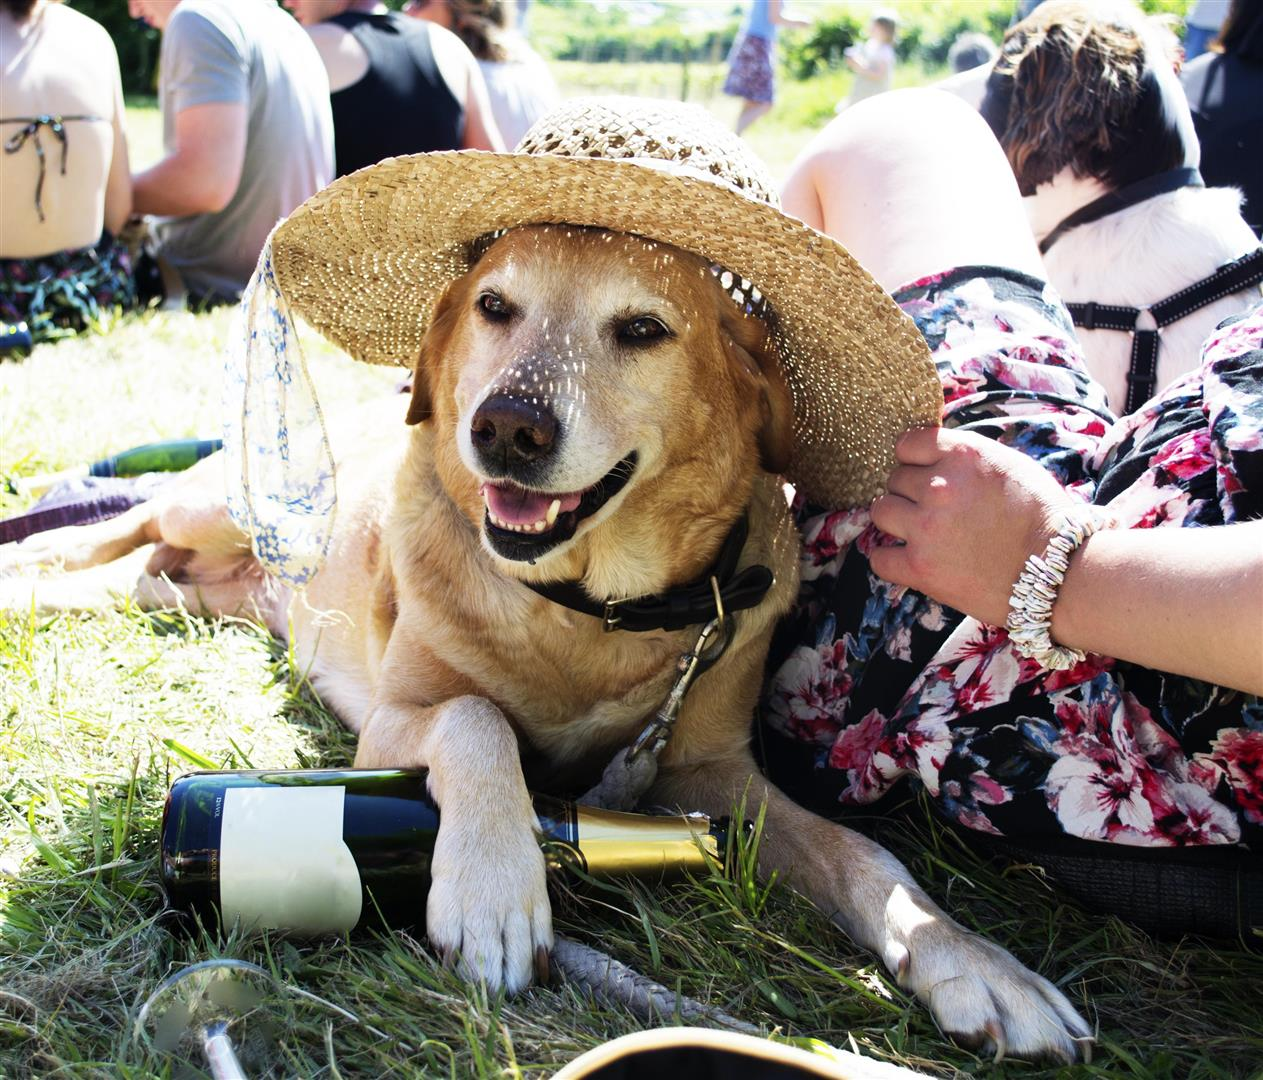 Festival with a dog